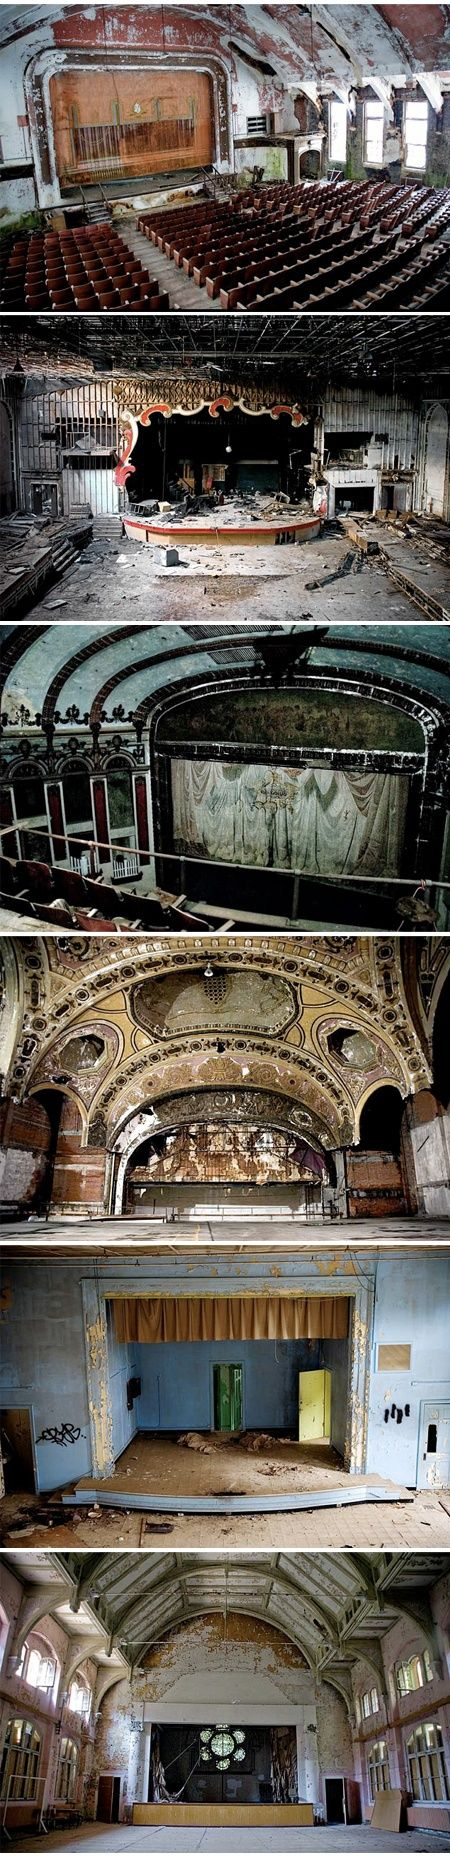 "This was nearly the fate of the Civic Theatre in Akron, OH, USA . Fortunately, it was lovingly restored and is now a popular venue for concerts, plays, and other live performances. You can also take a free tour to learn about  the theater's ""haunted""  history."